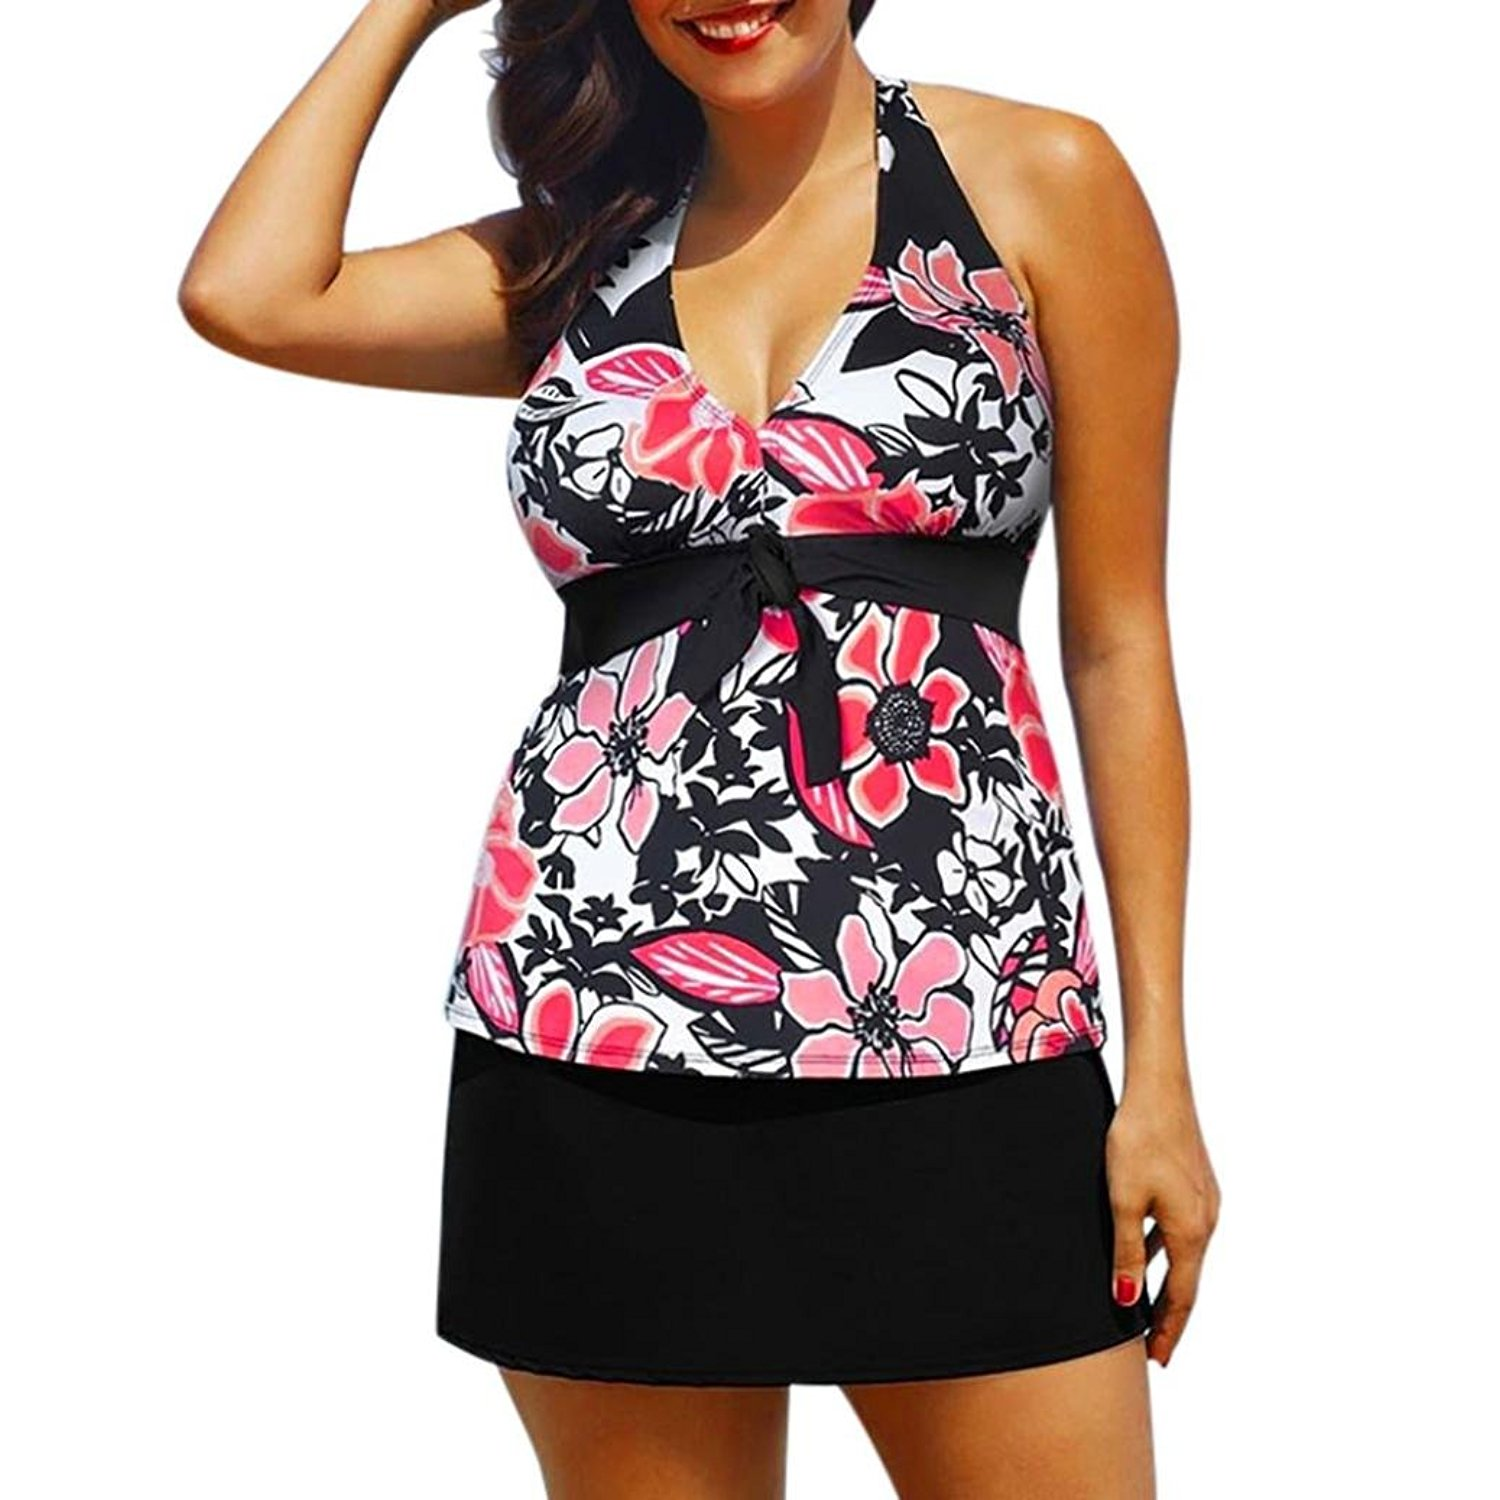 37fd69551e033 ZDUND Women's Plus Size Swimsuit Retro Floral Print Tankini Set Two Piece  Swimwear Tankini Tops Boyshort Set. null. null. Get Quotations · Kintaz  Women ...